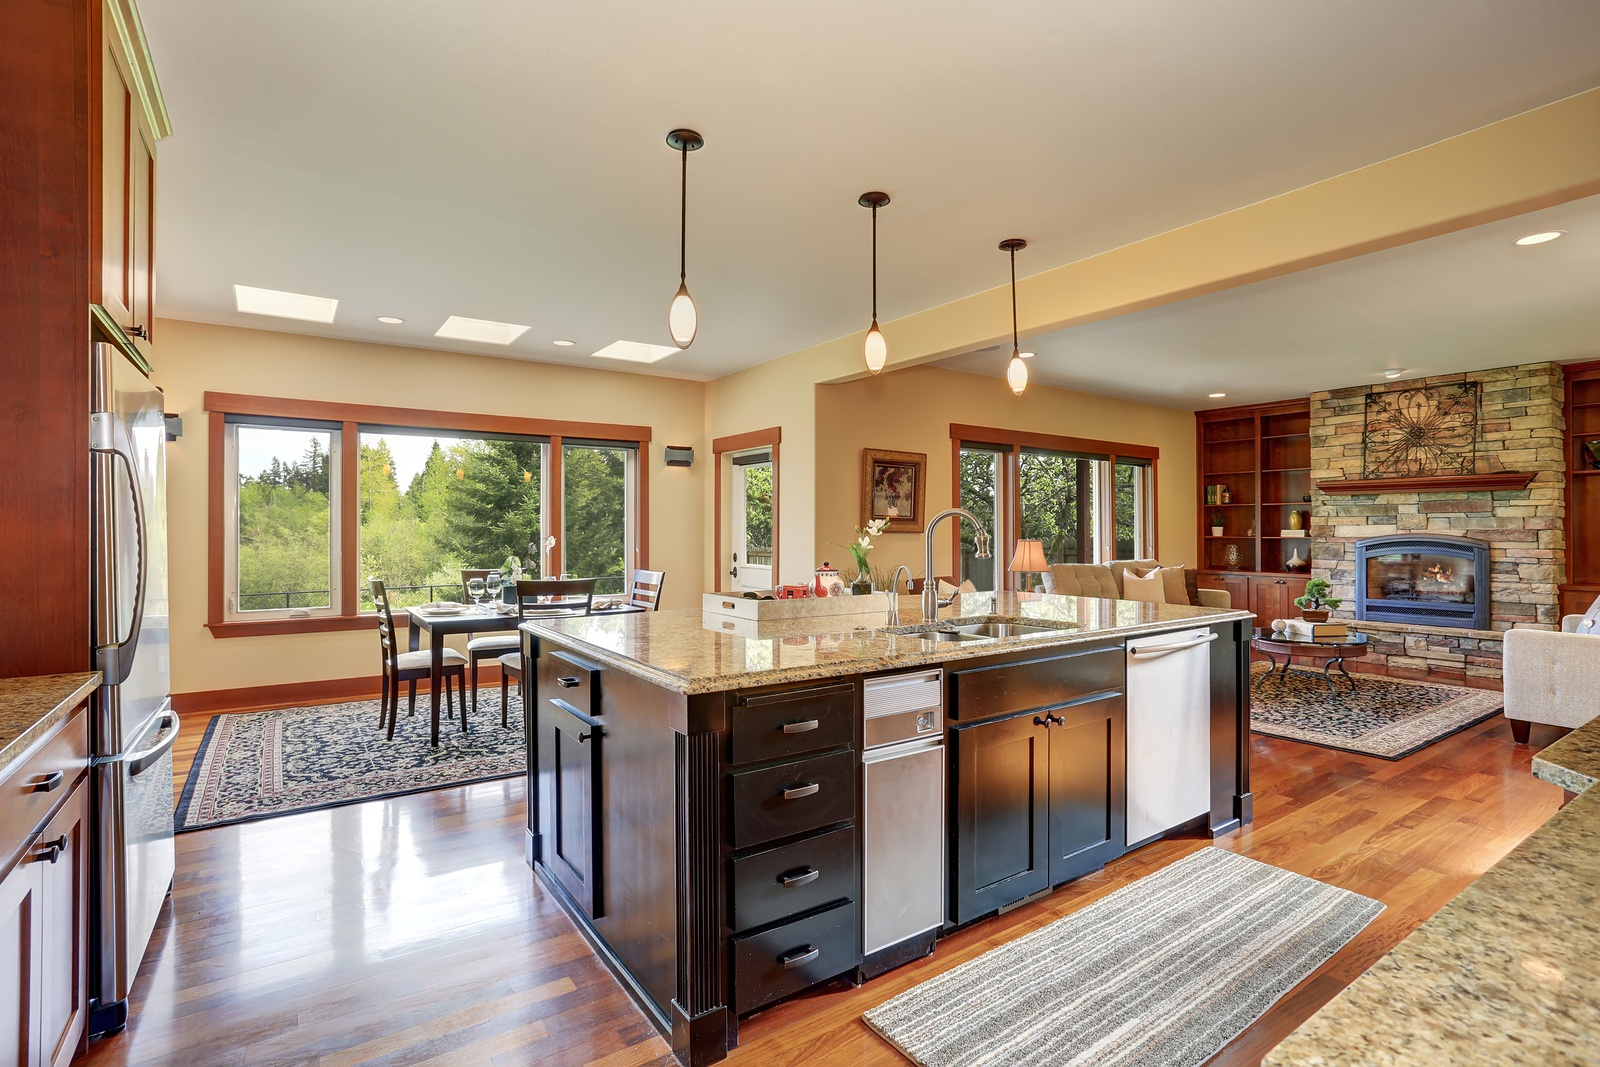 bigstock-Kitchen-Area-With-Open-Floor-P-138646313.jpg